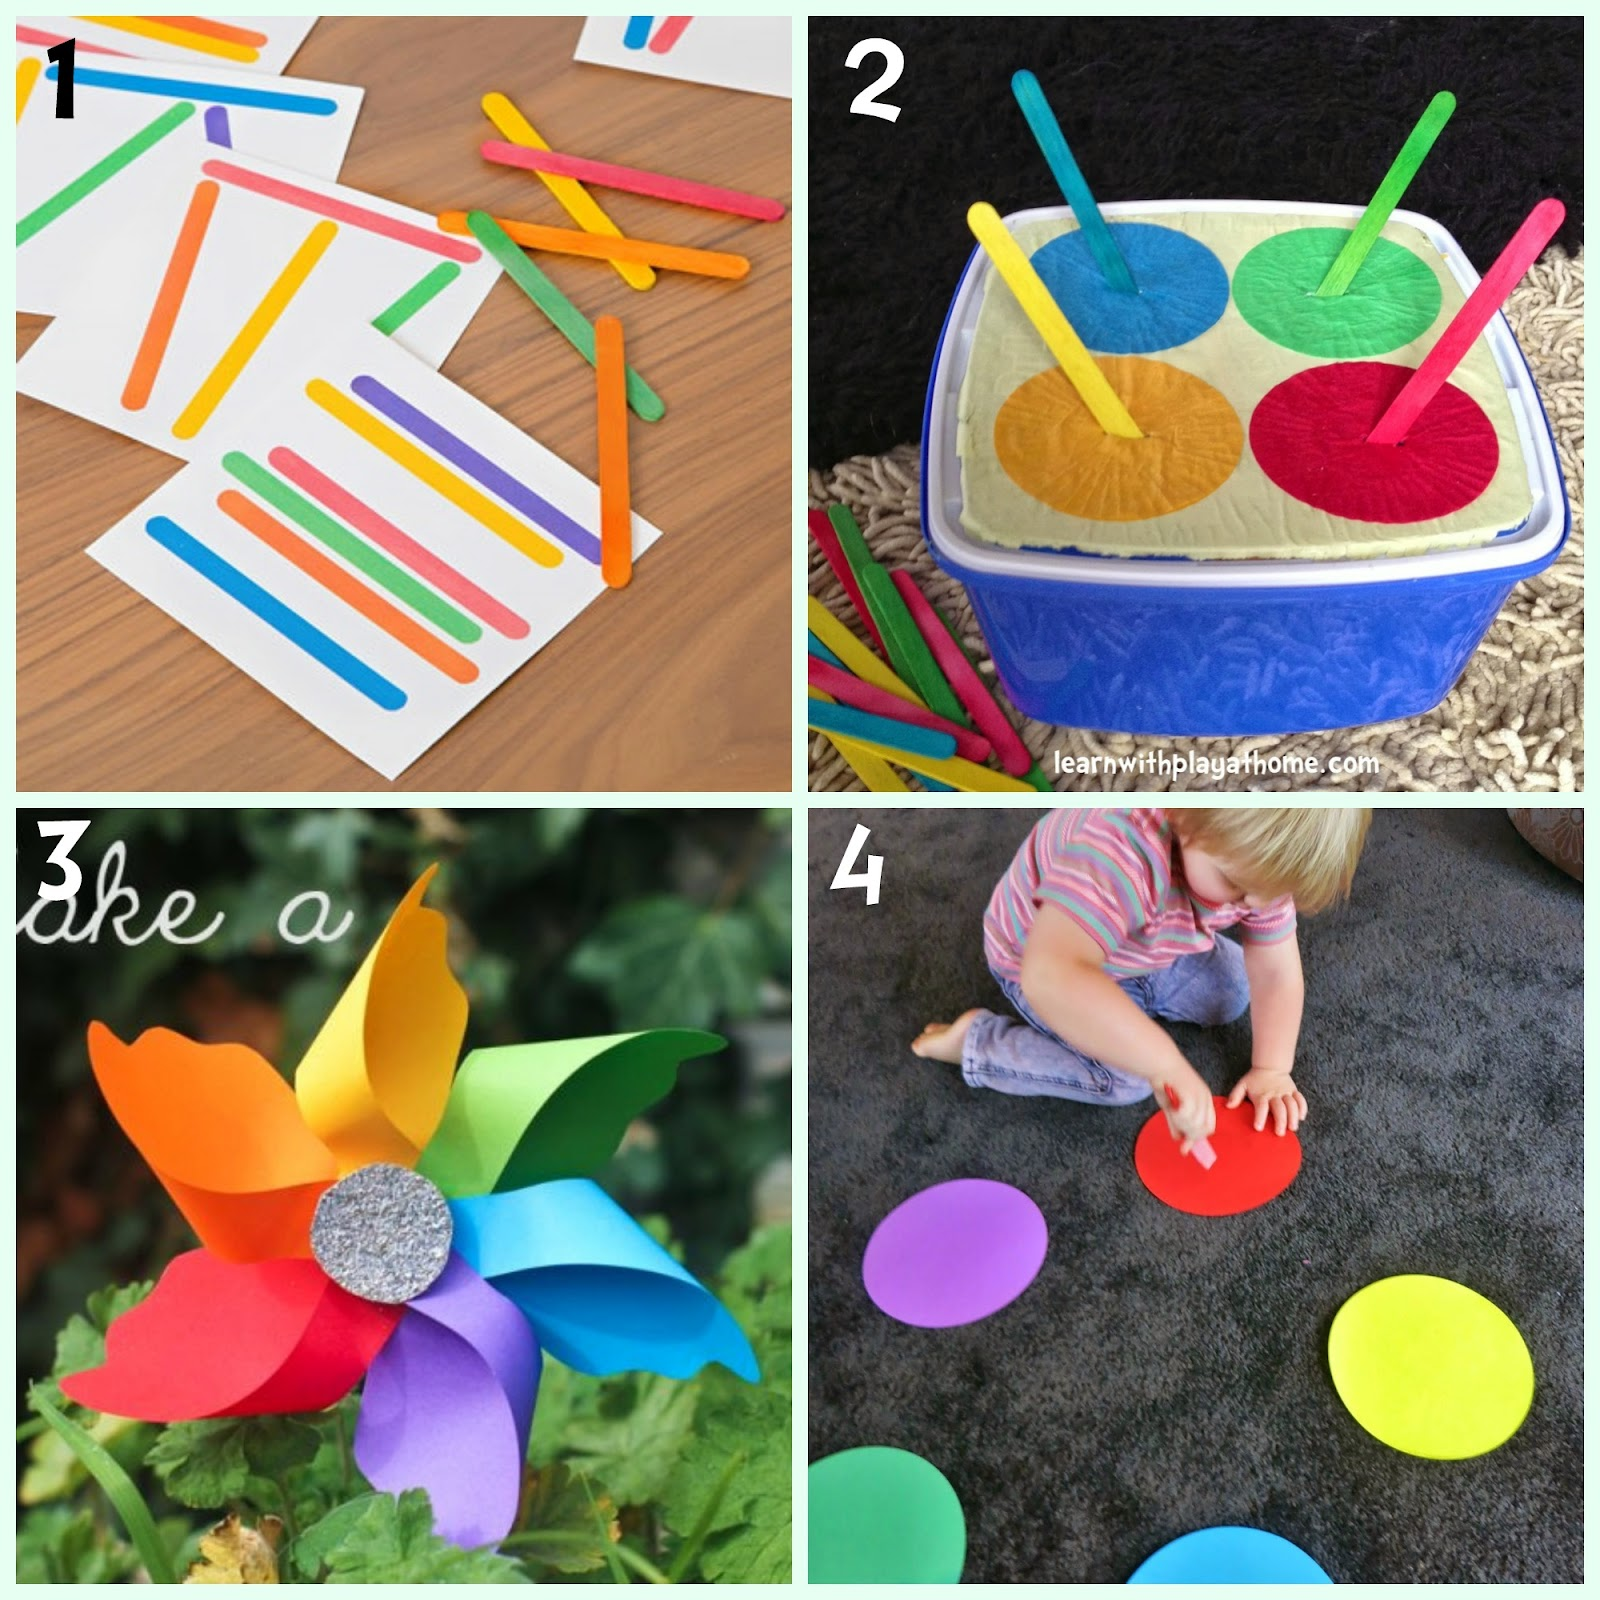 Top Learning Games for 2 Year Olds Pics